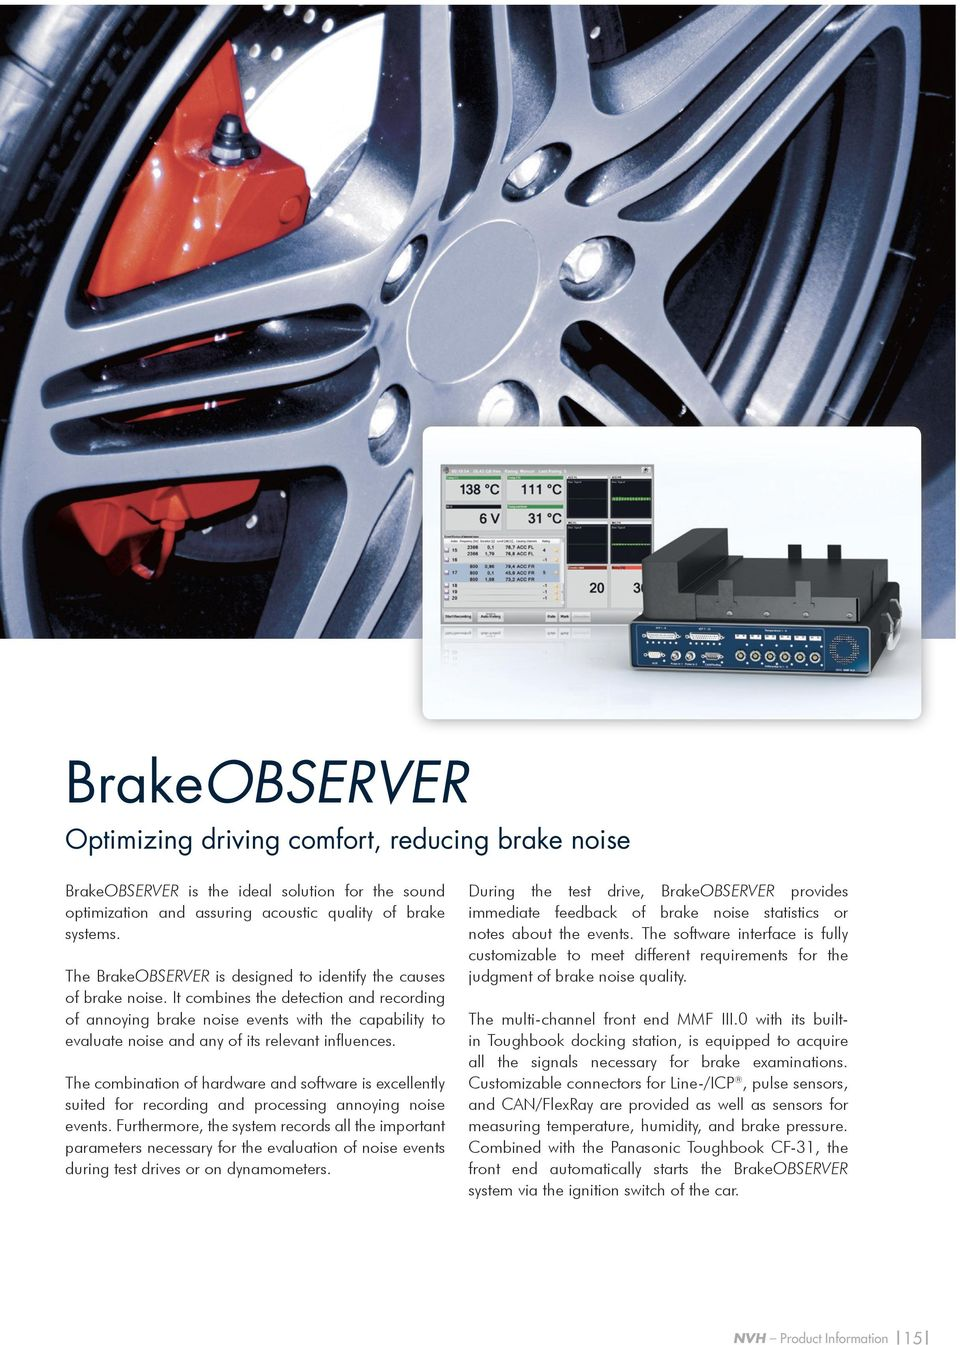 It combines the detection and recording of annoying brake noise events with the capability to evaluate noise and any of its relevant influences.